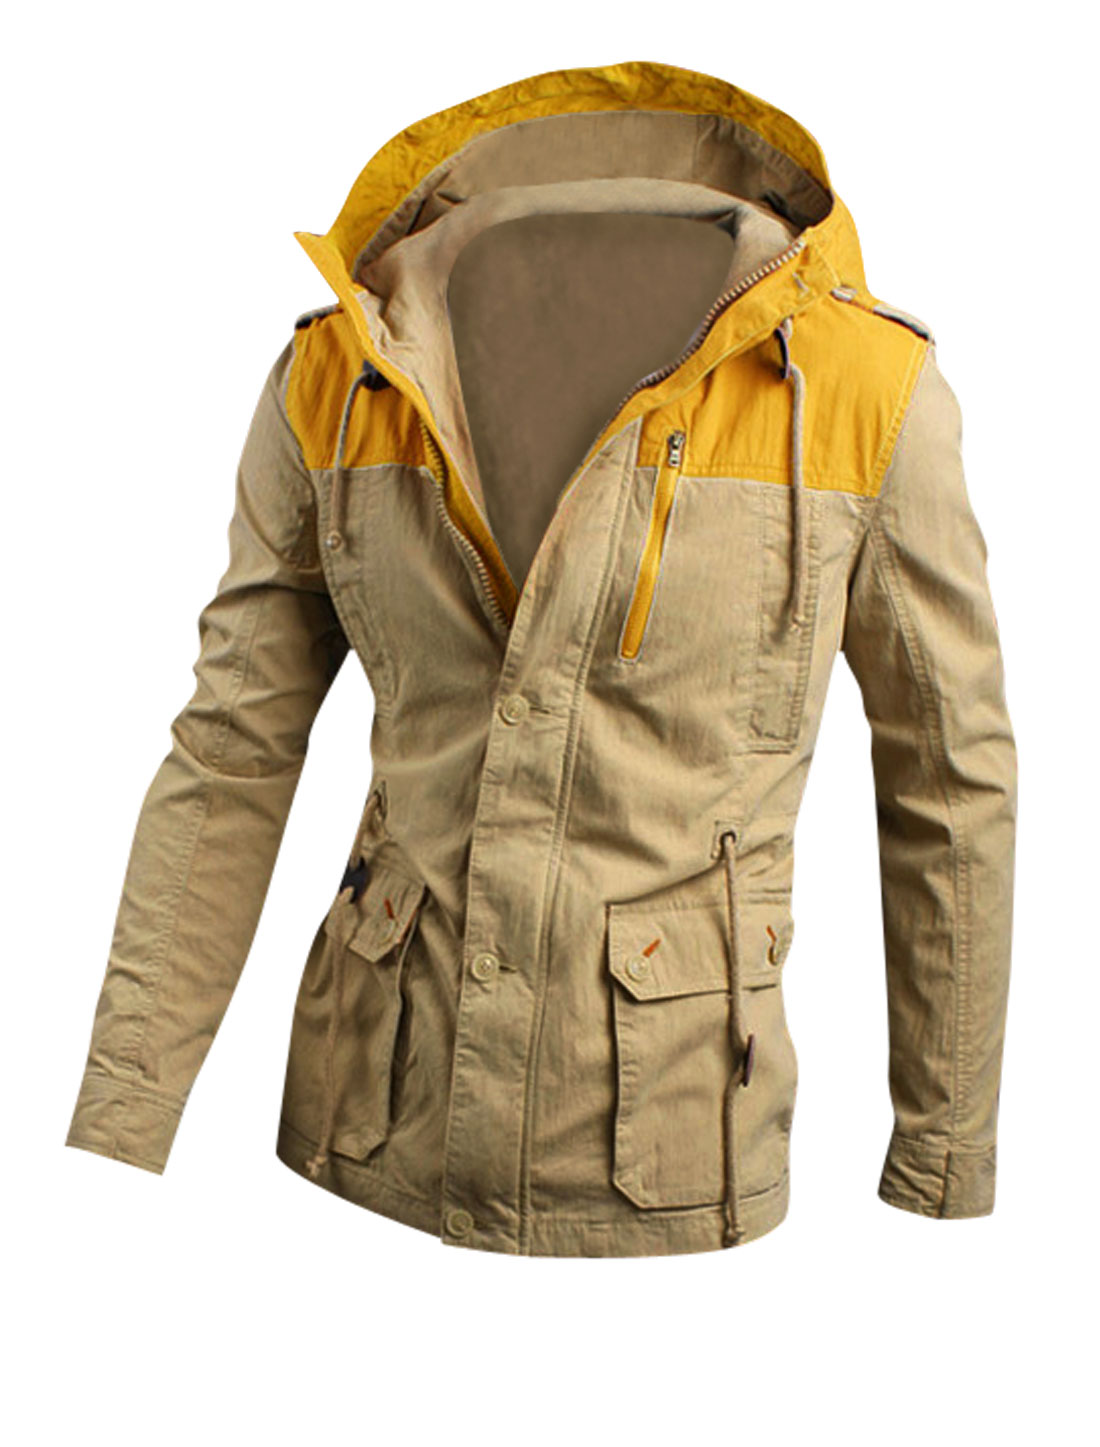 Men Drawstring Detail Multi Pockets Color Block Hooded Jacket Khaki Yellow M